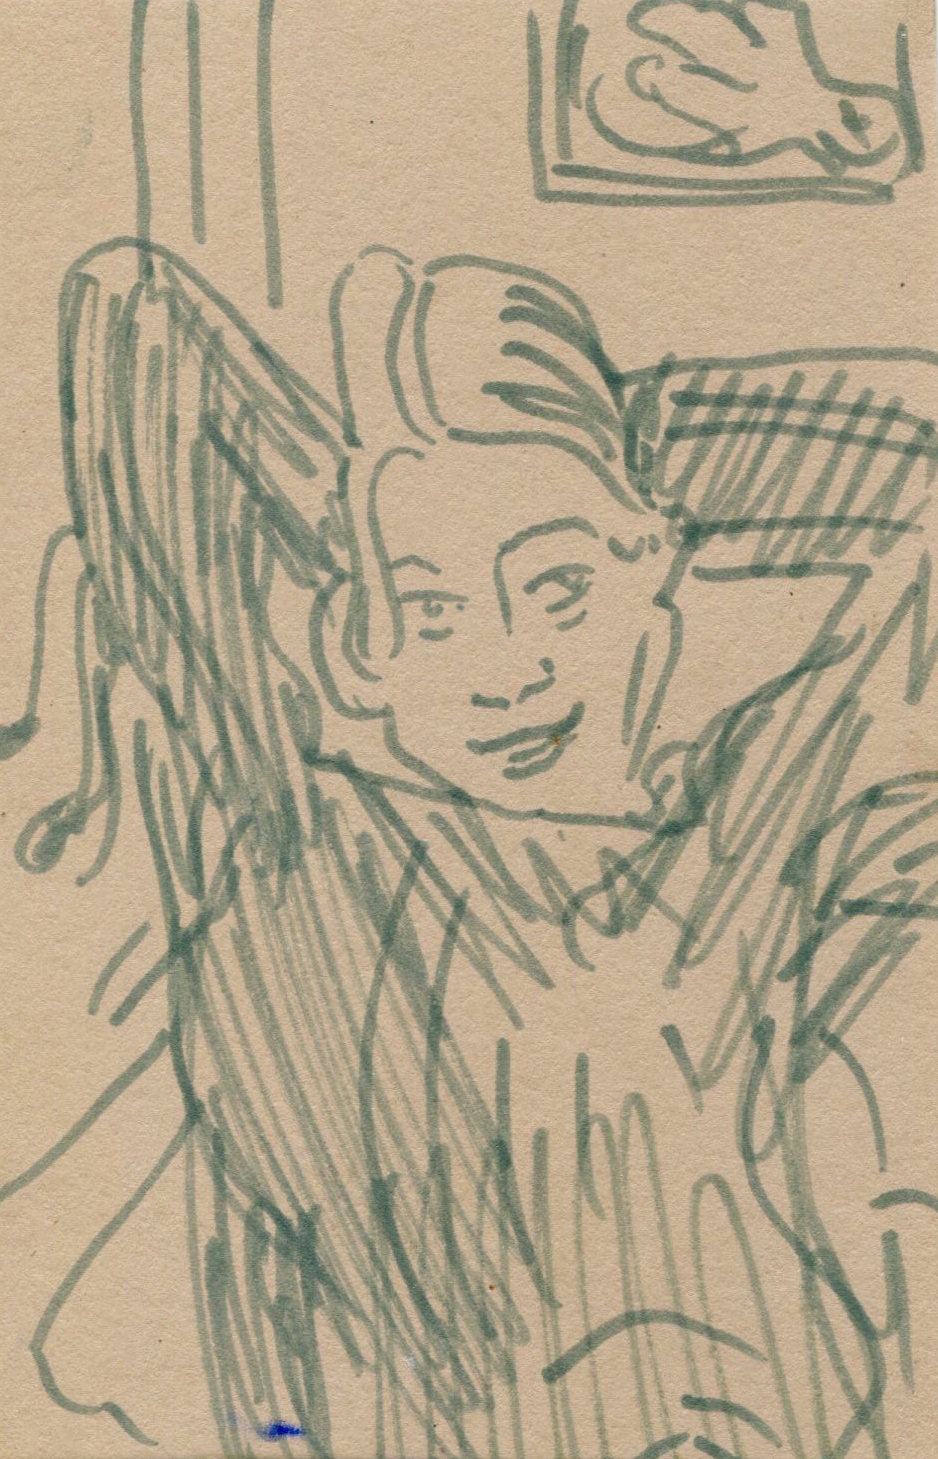 Immediately A Thousand Bluebirds Flew In And Tidied Your Hair   Pen on paper  12.5 x 8.5 cm